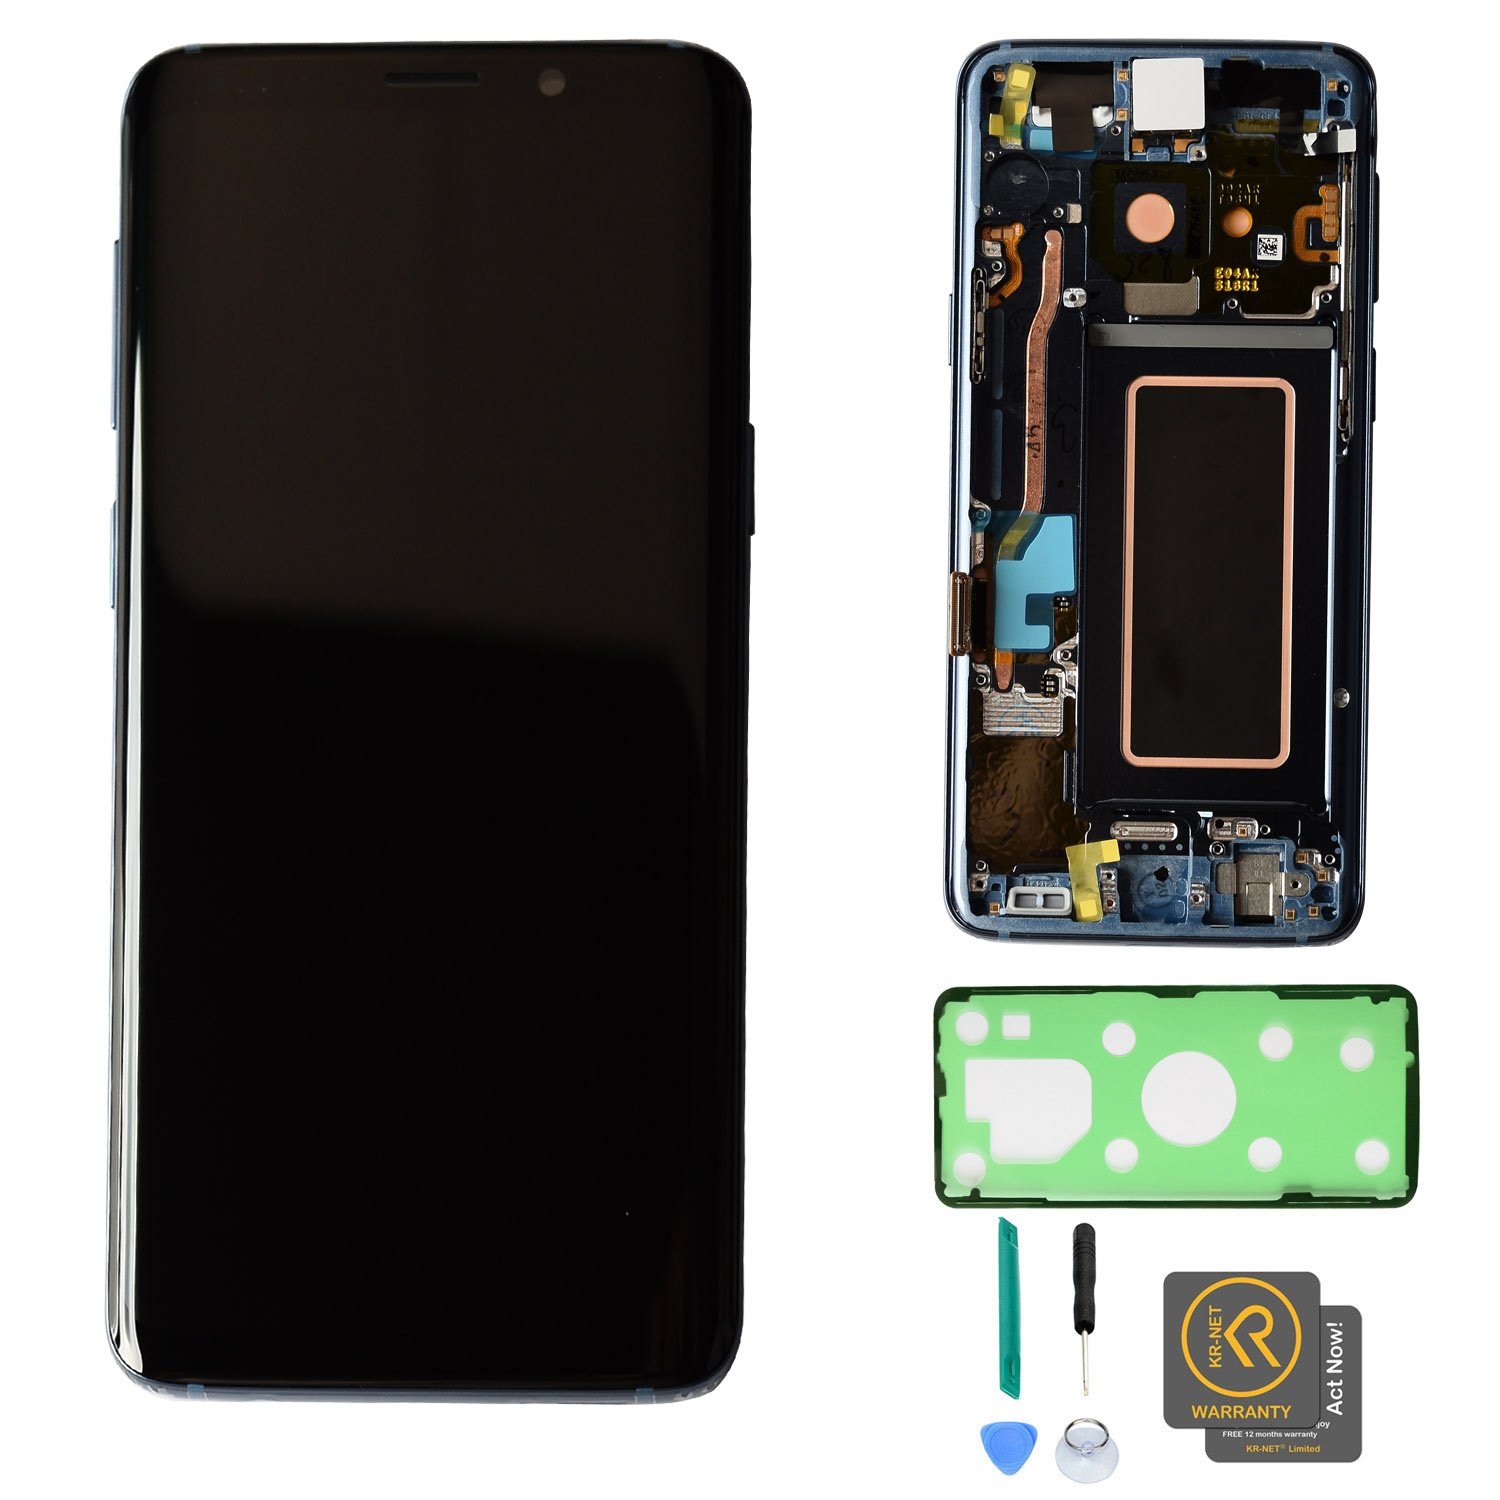 KR-NET [Coral Blue with Frame] AMOLED LCD Display Touch Screen Digitizer Assembly Replacement for Samsung Galaxy S9 SM-G960, with Adhesive and Tools